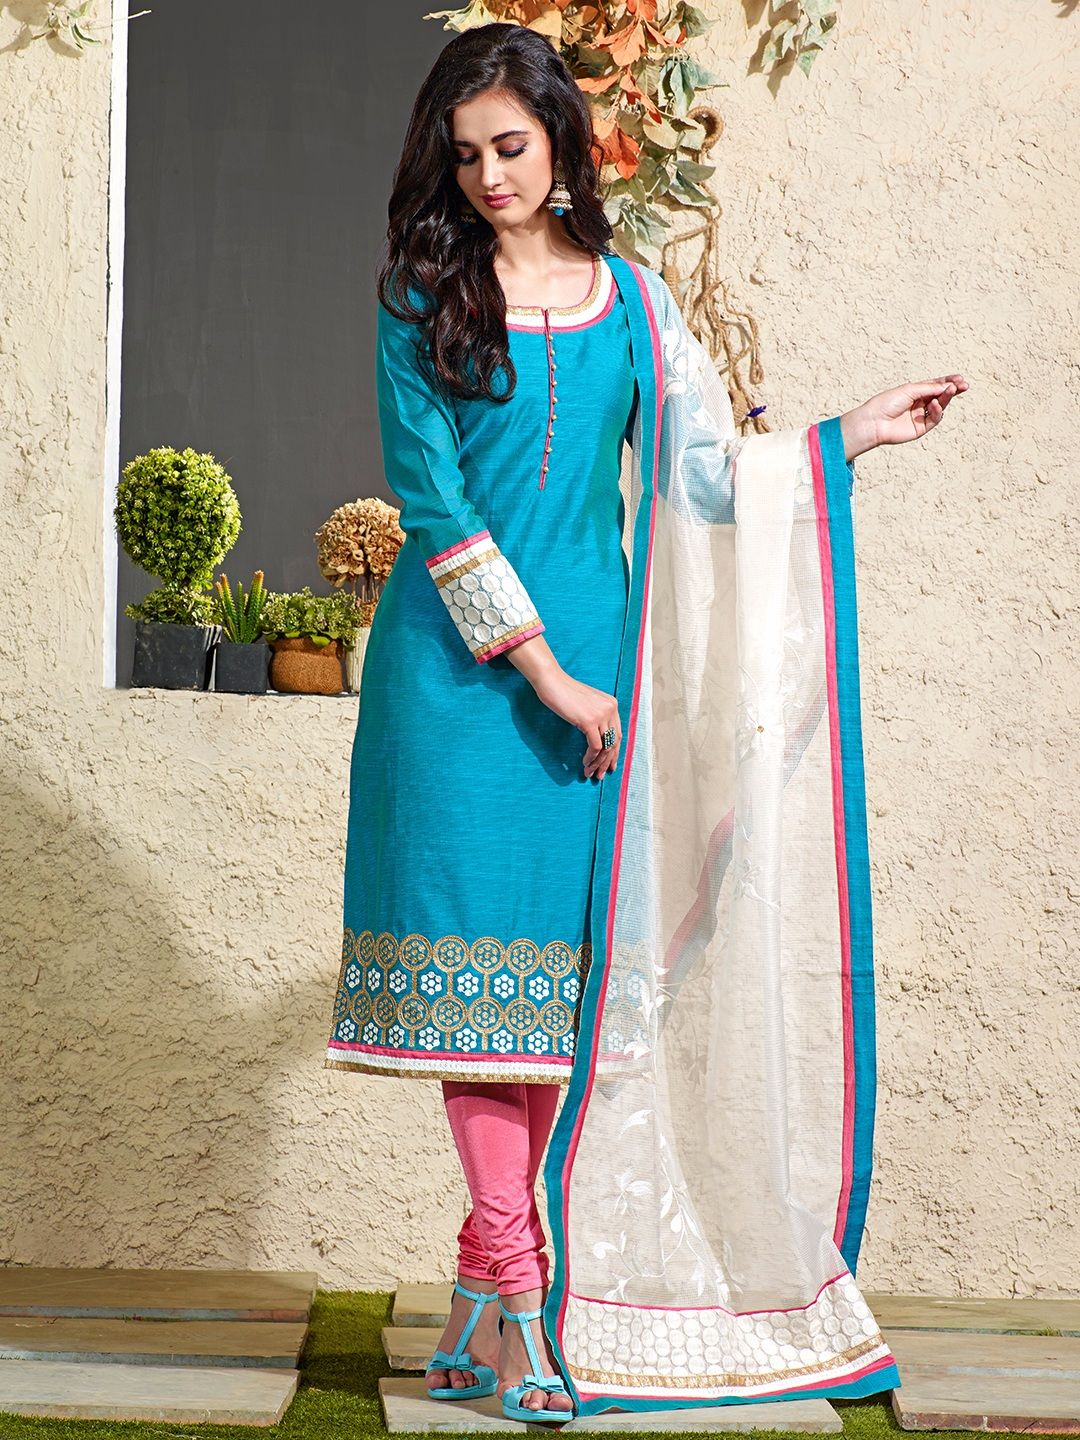 Pin by Ananya on Indian feminity | Pinterest | Salwar suits, Indian ...